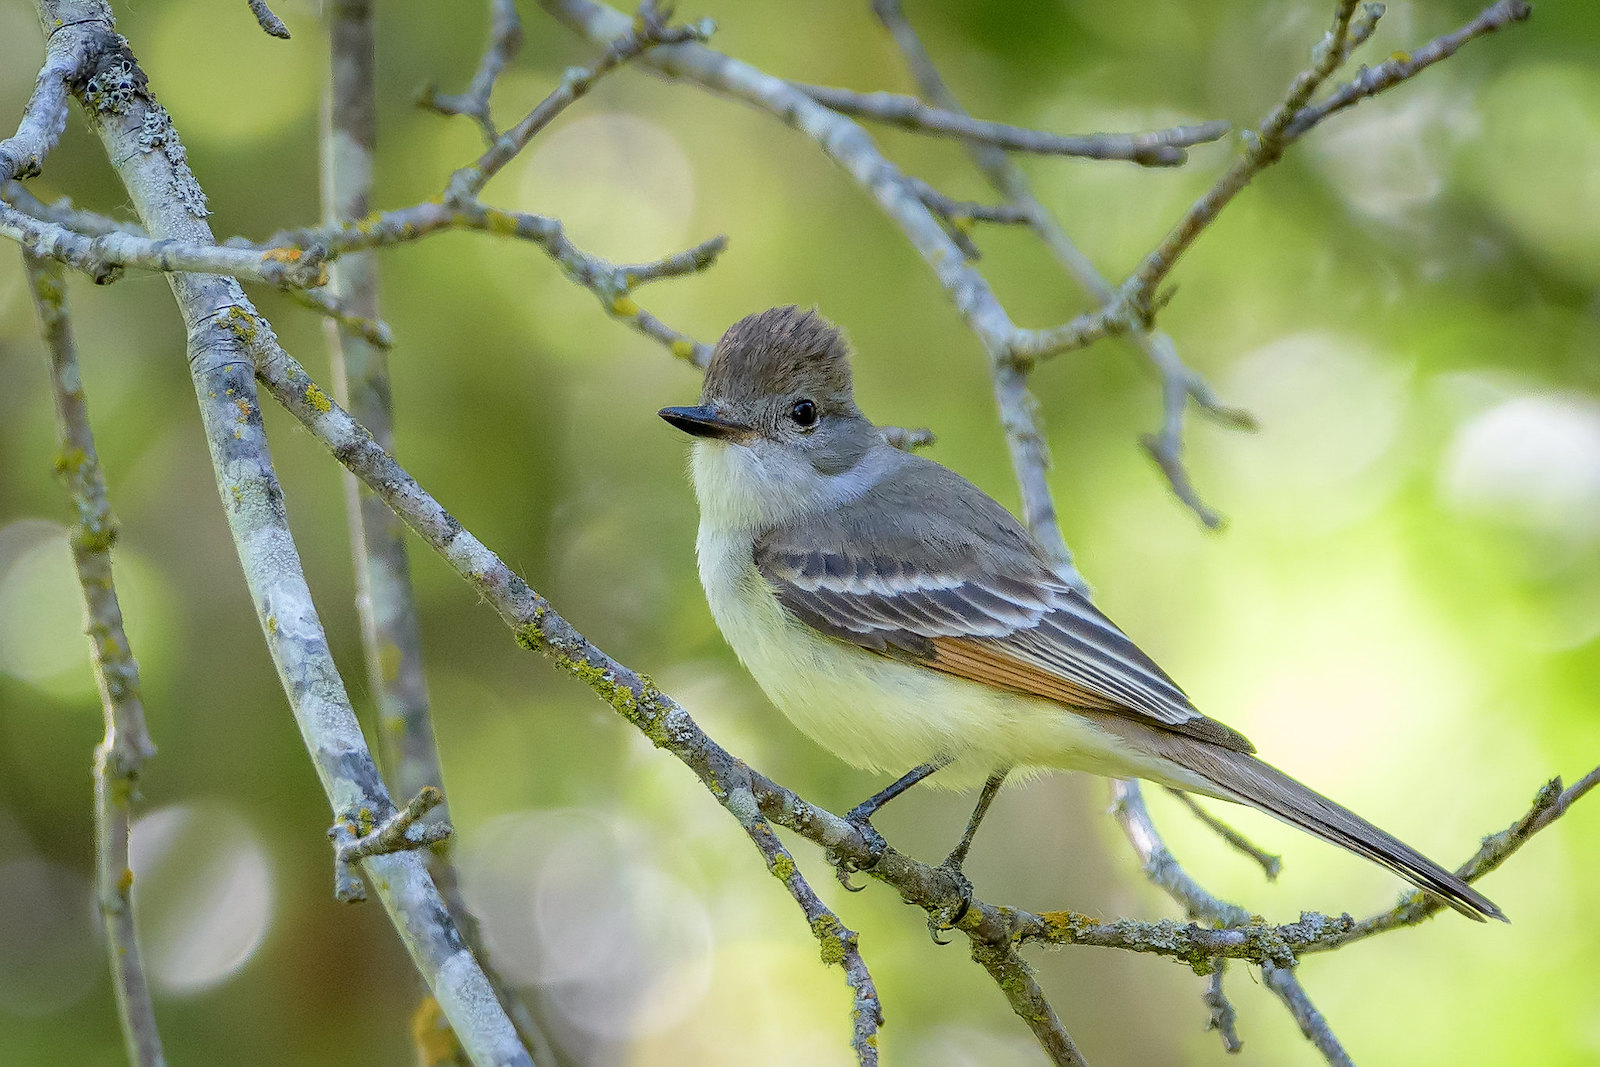 Ash-throated Flycatcher image